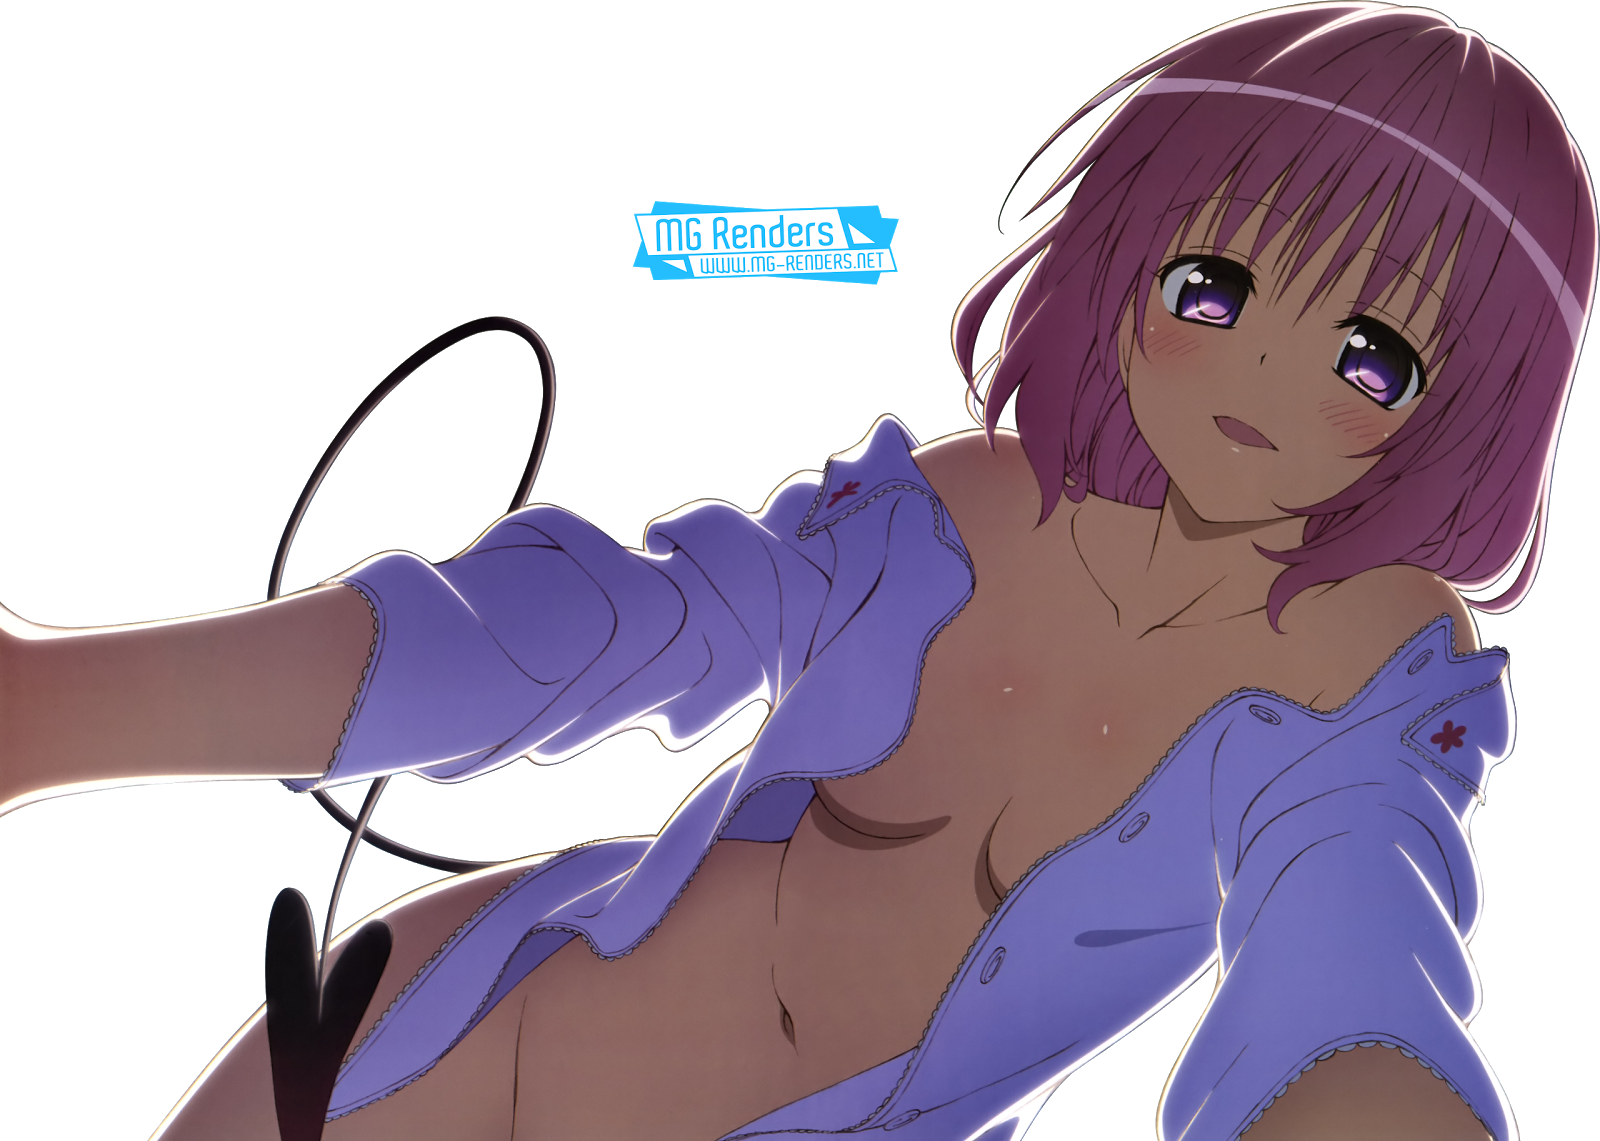 Tags: Anime, Render,  Momo Velia Deviluke,  To Love-Ru, To Love You, ToLoveRu, ToLoveRu Trouble, To-Rabu-Ru, ToRaBuRu, To LOVE-Ru Darkness, To LOVEる -とらぶる-,  PNG, Image, Picture